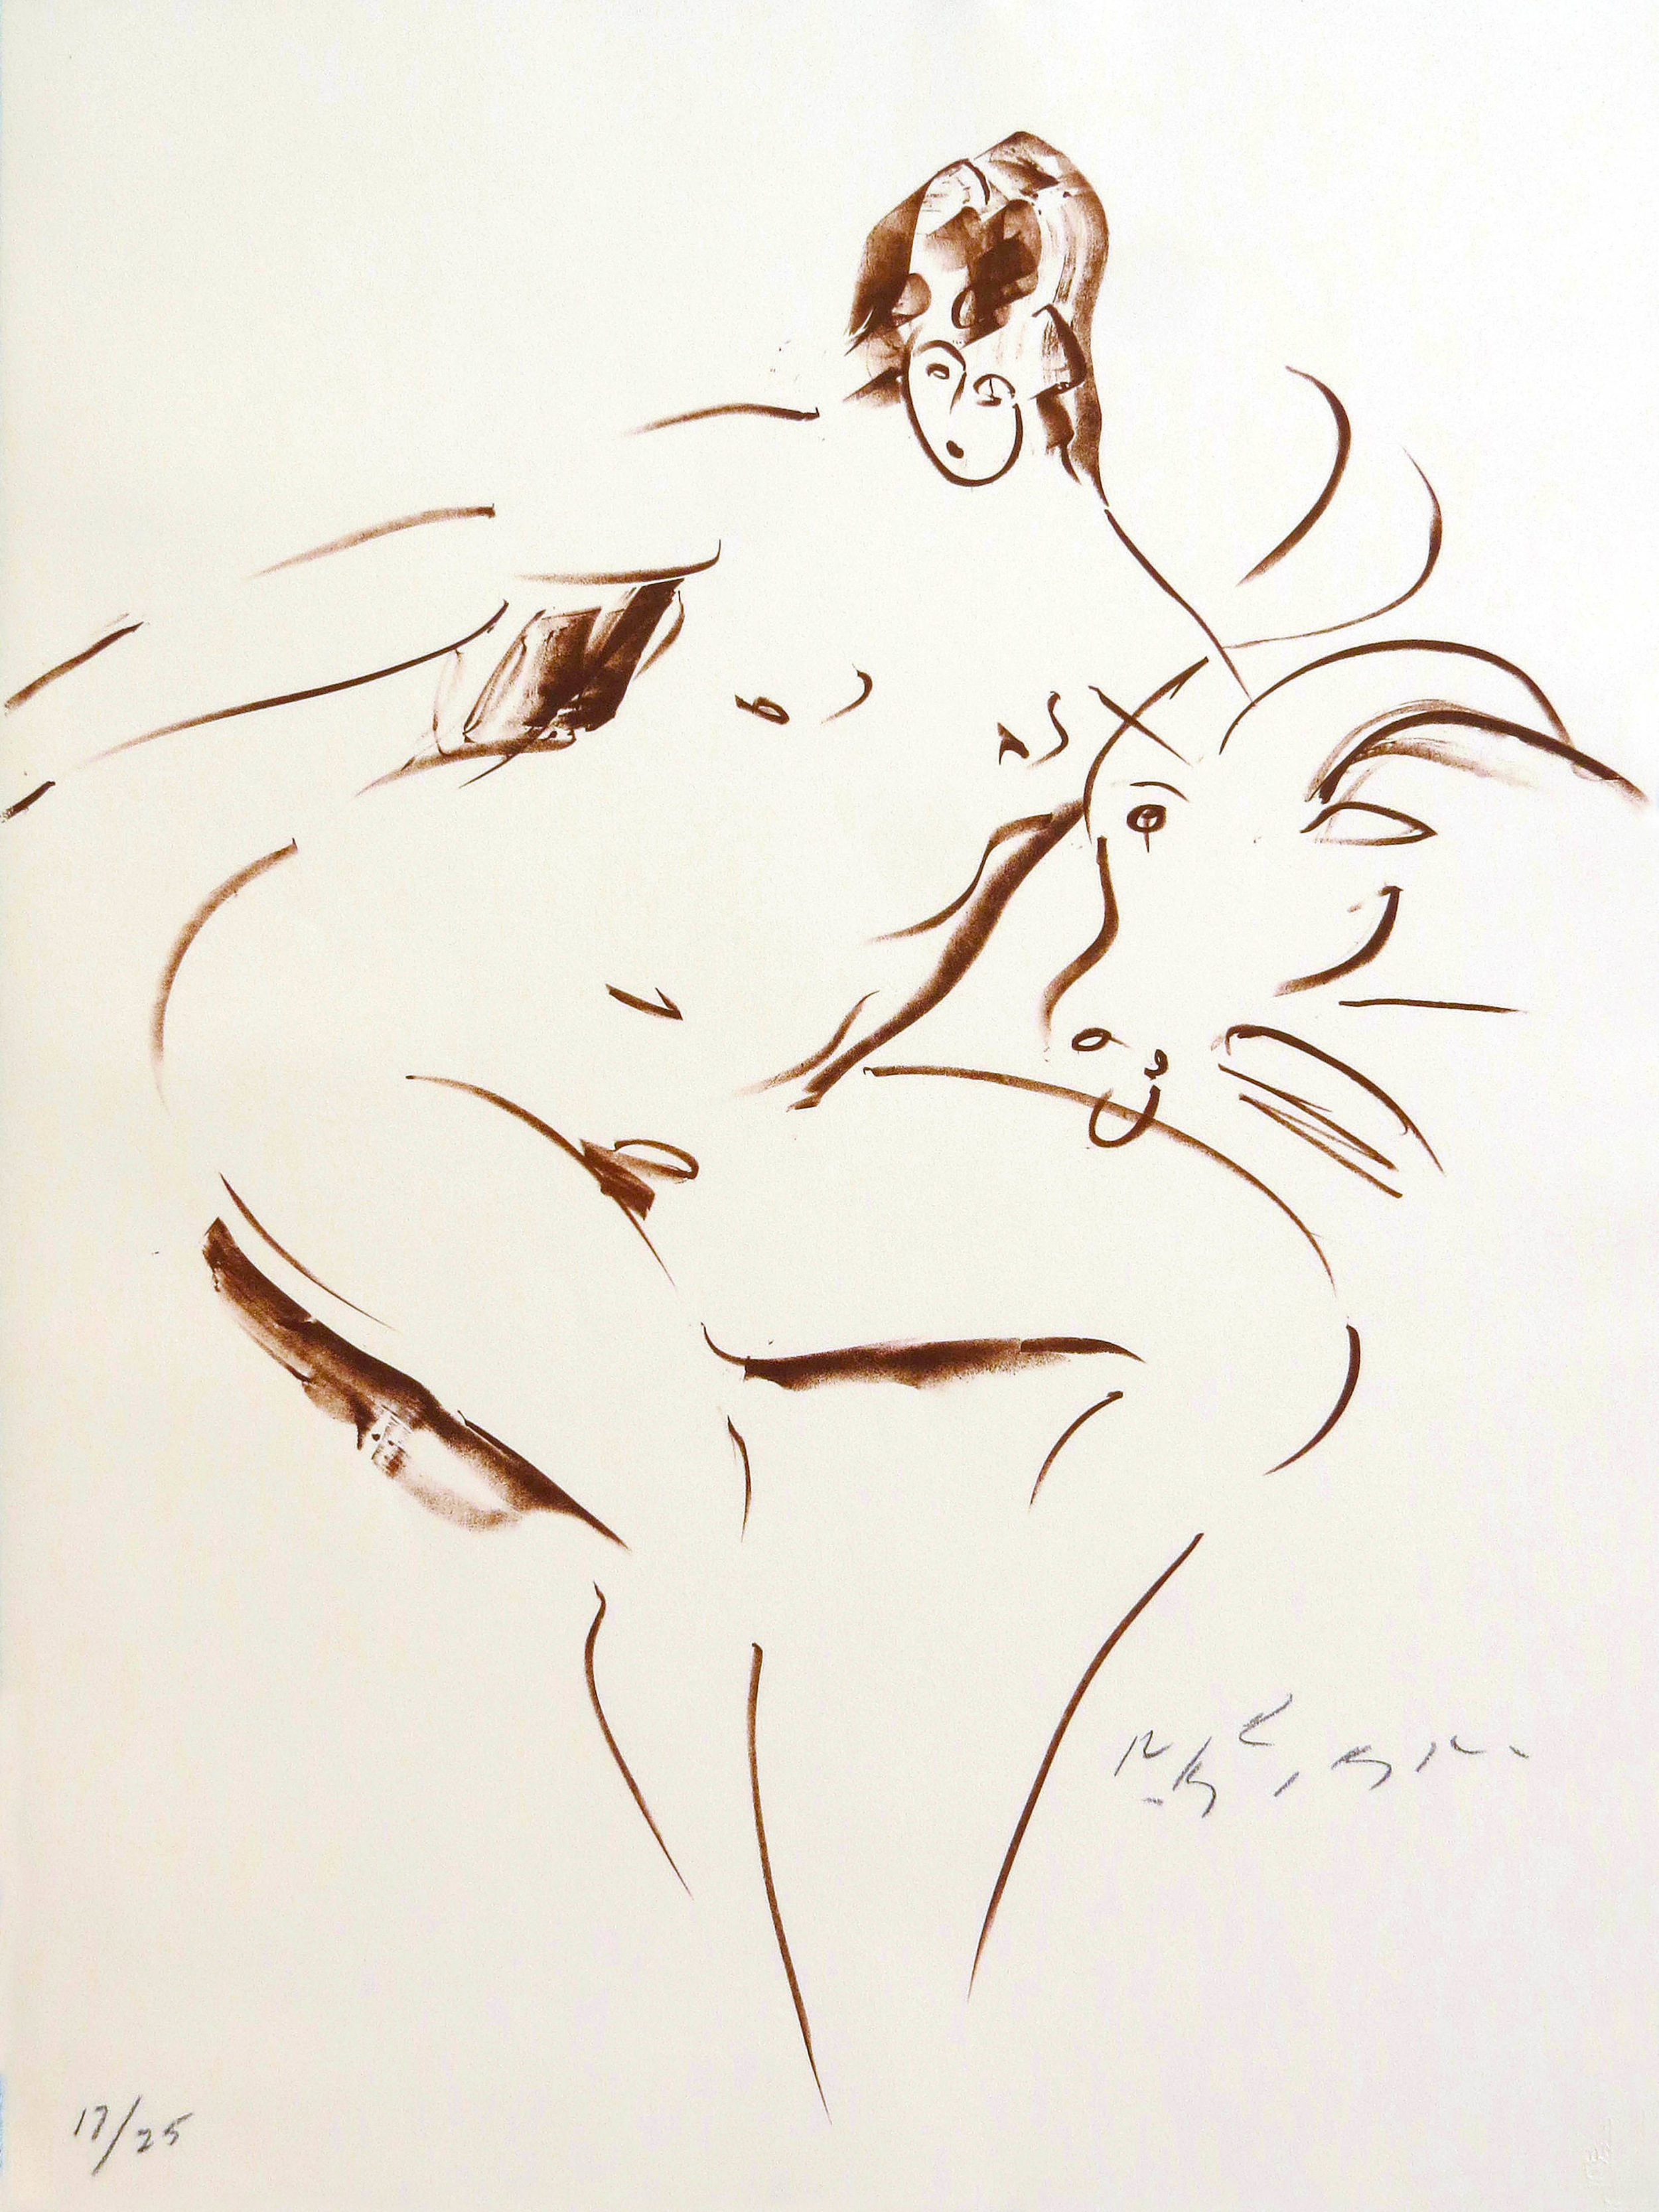 """Sitting Nymph, from Land of the Gods Suite     1980, lithograph, printed in sanguine ink on buff Arches paper in an edition of 25 22.5 x 30"""" Nakian Estate F-706146"""